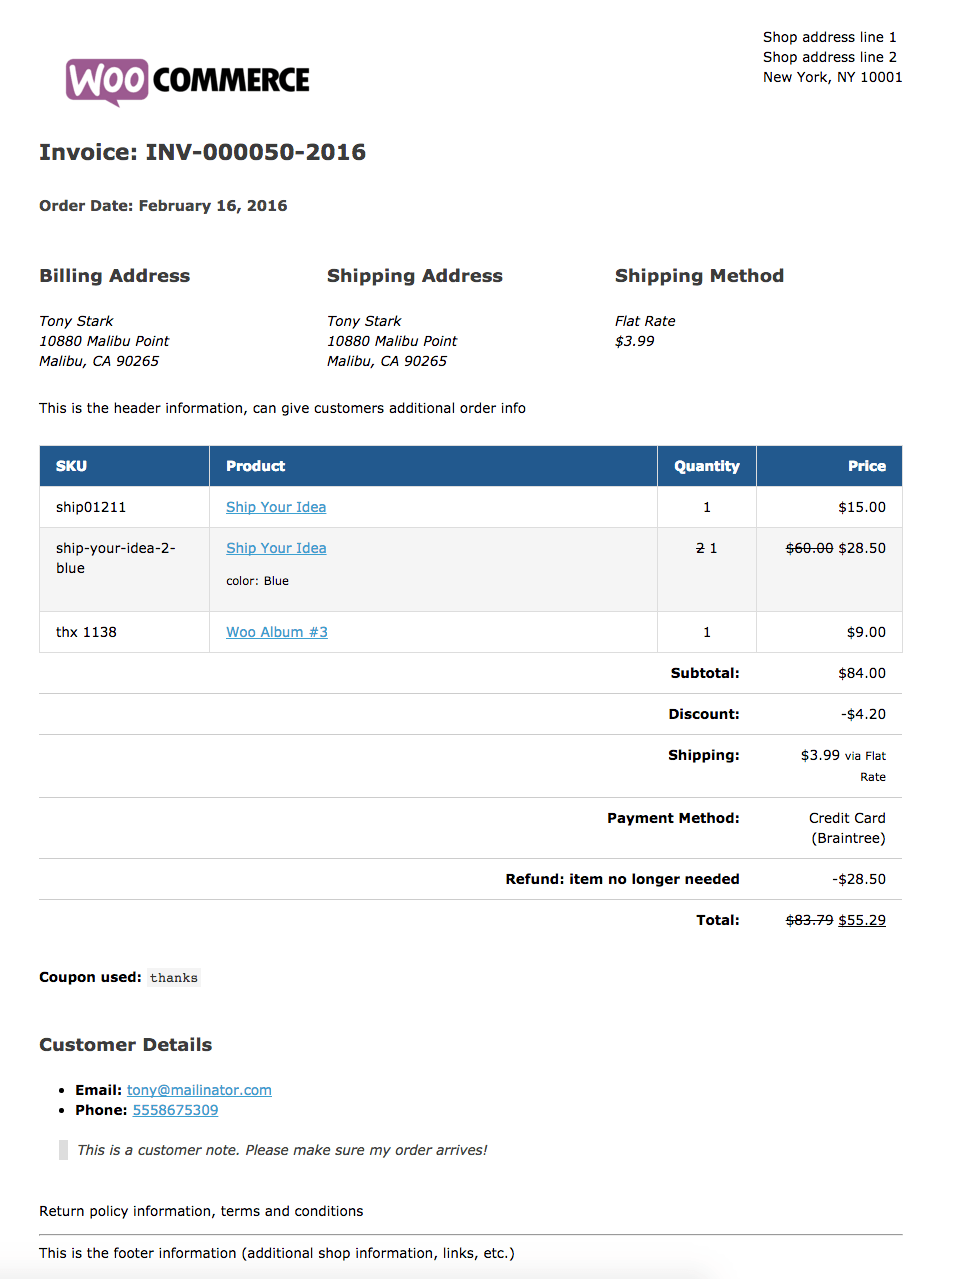 Aldiablosus  Scenic Print Invoices Amp Packing Lists  Woocommerce With Foxy View A Sample Invoice  With Extraordinary Templates For Invoices Also Invoice Price For Cars In Addition Pages Invoice Template And Invoicing Templates As Well As Ahs Invoicing Additionally How To Create Invoice From Woocommercecom With Aldiablosus  Foxy Print Invoices Amp Packing Lists  Woocommerce With Extraordinary View A Sample Invoice  And Scenic Templates For Invoices Also Invoice Price For Cars In Addition Pages Invoice Template From Woocommercecom